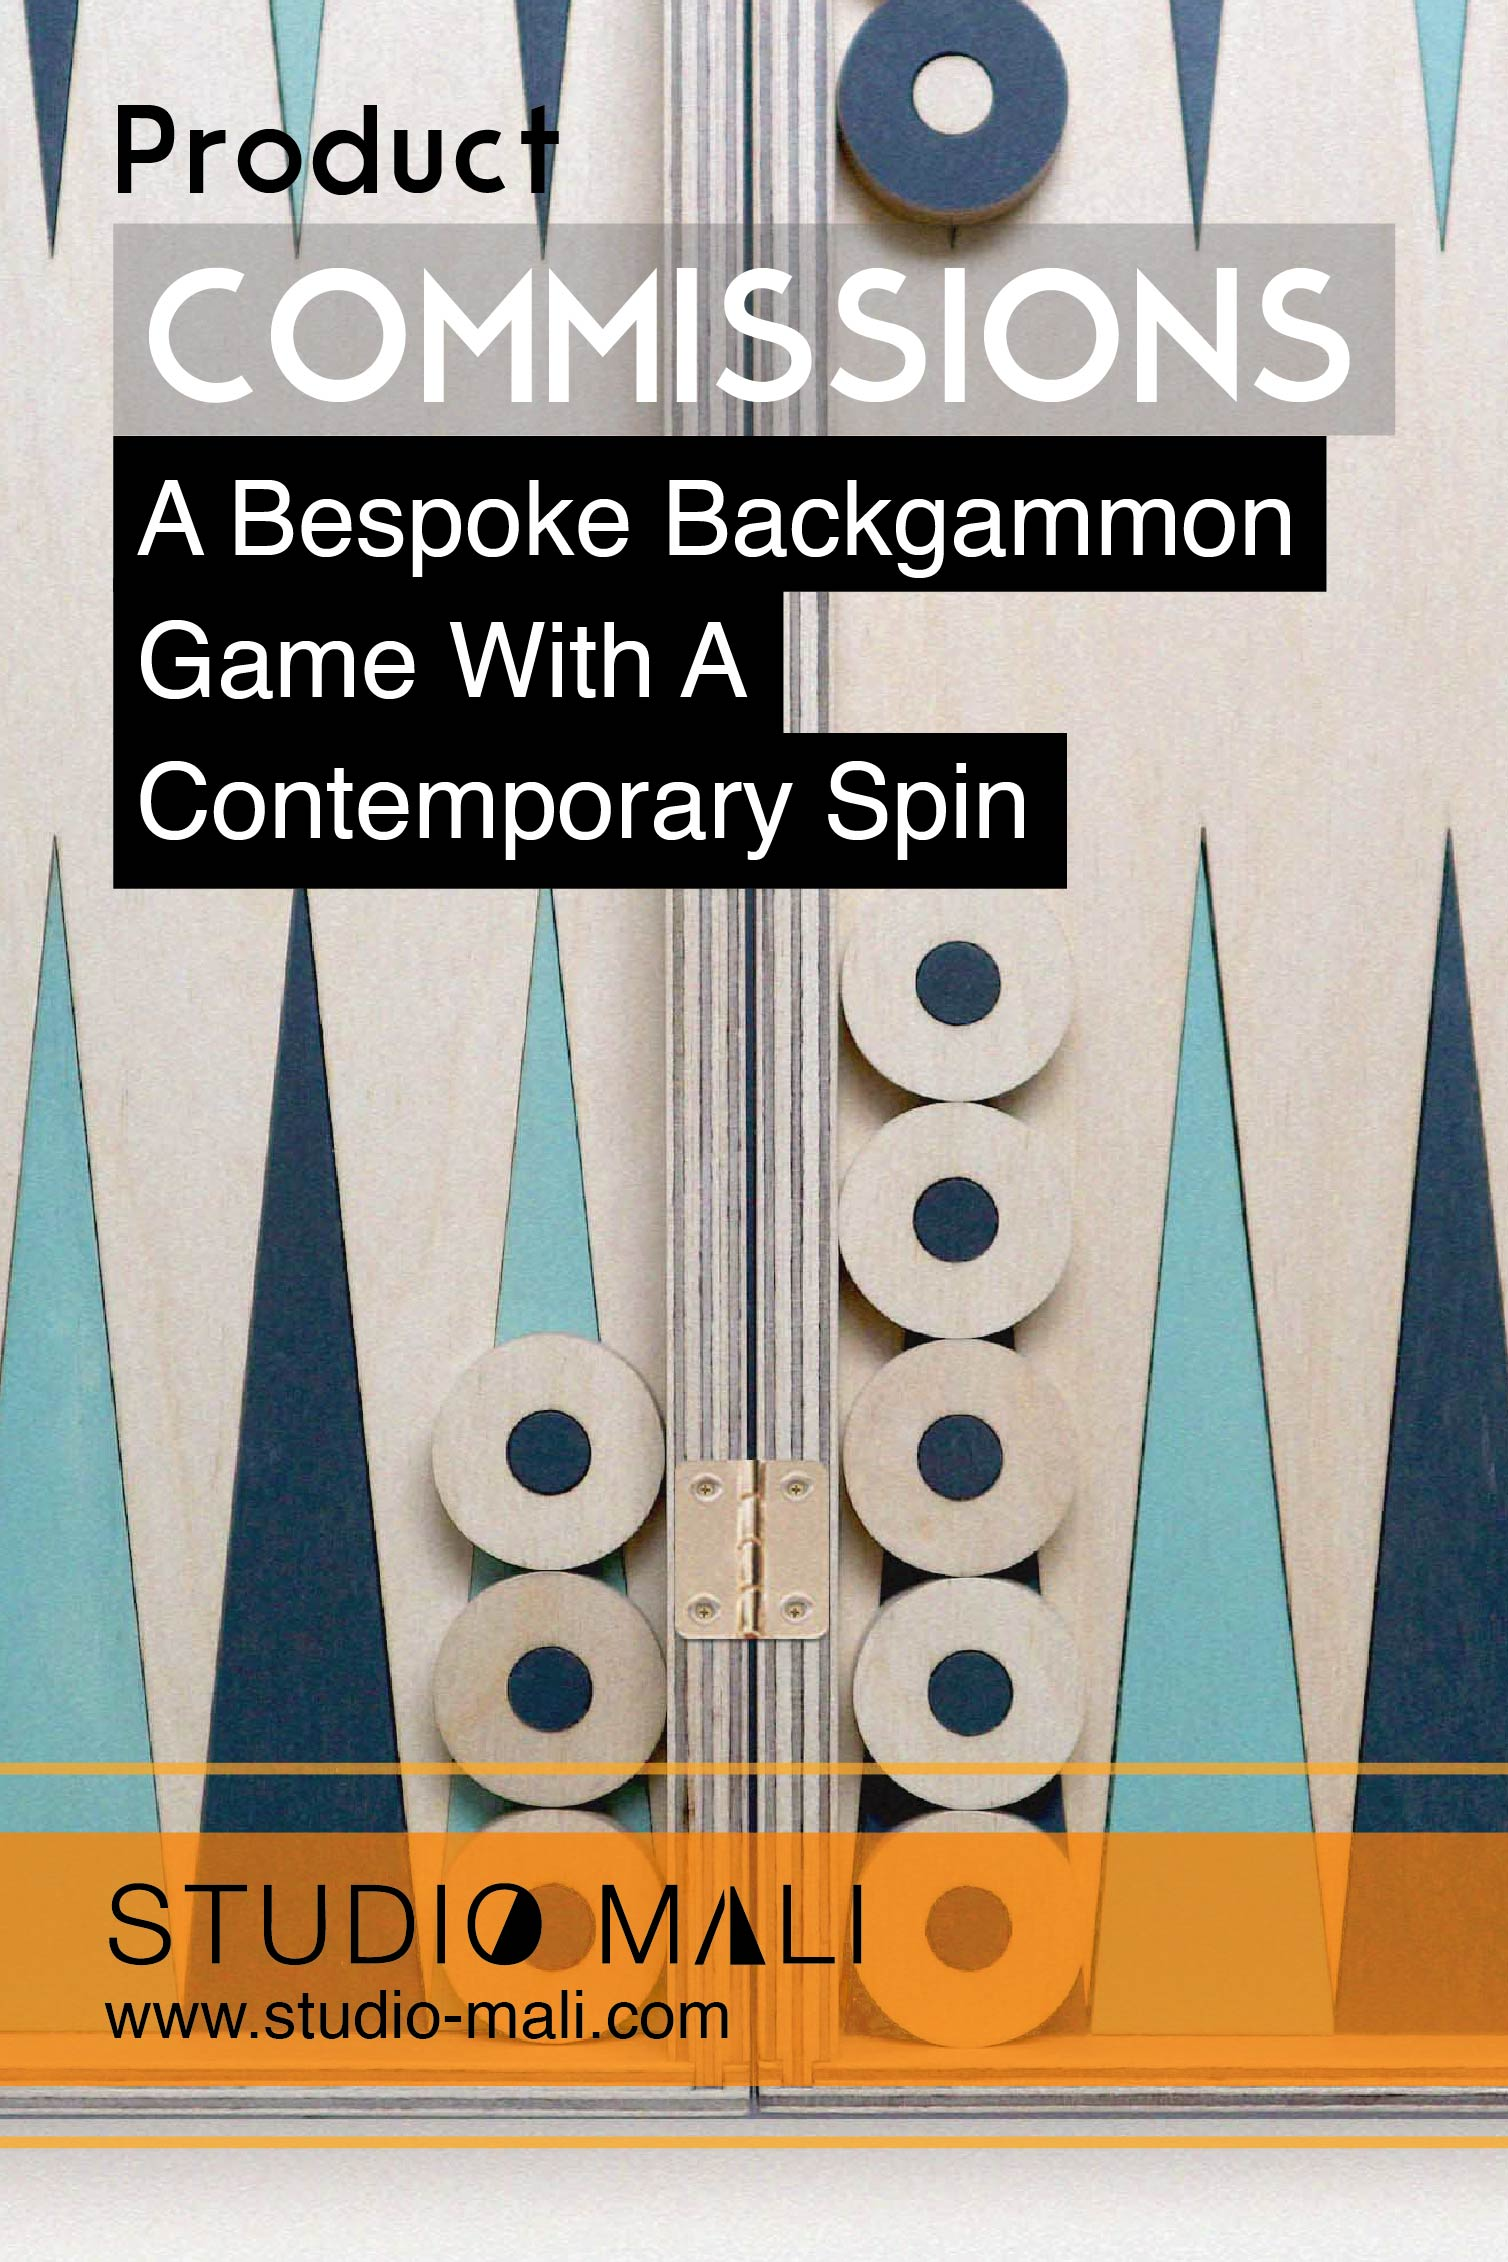 Commissions - A Bespoke Backgammon Game With A Contemporary Spin